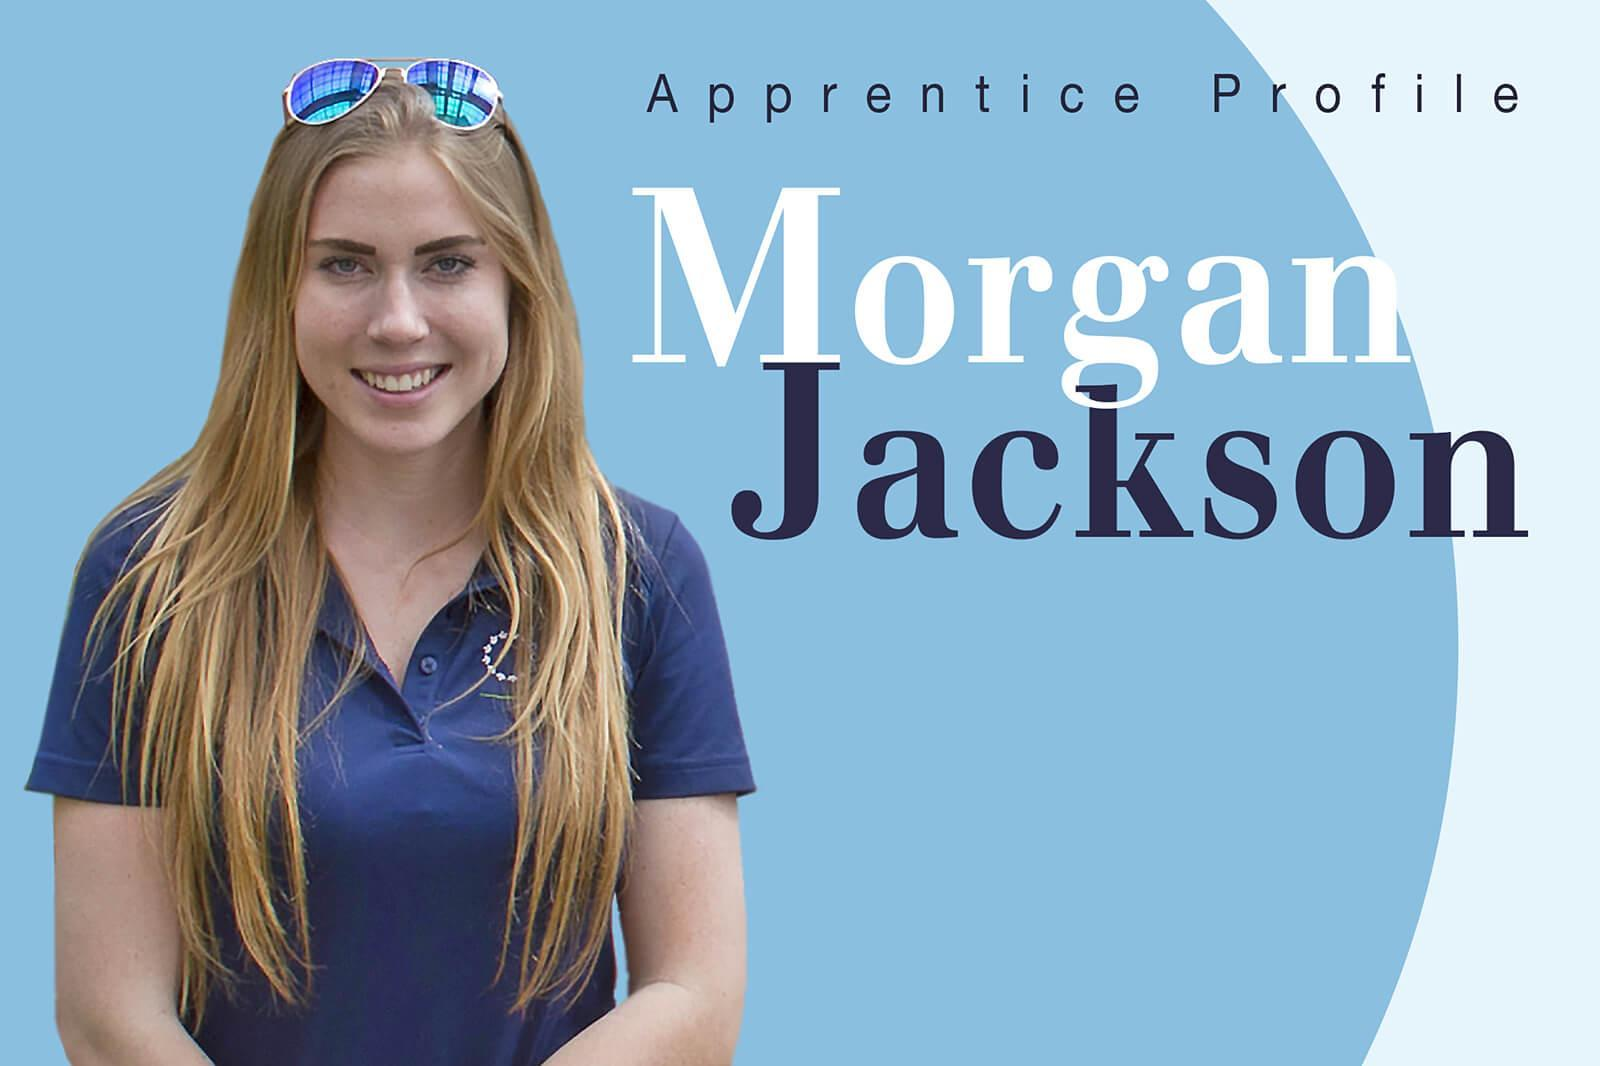 Apprentice Profile: Morgan Jackson